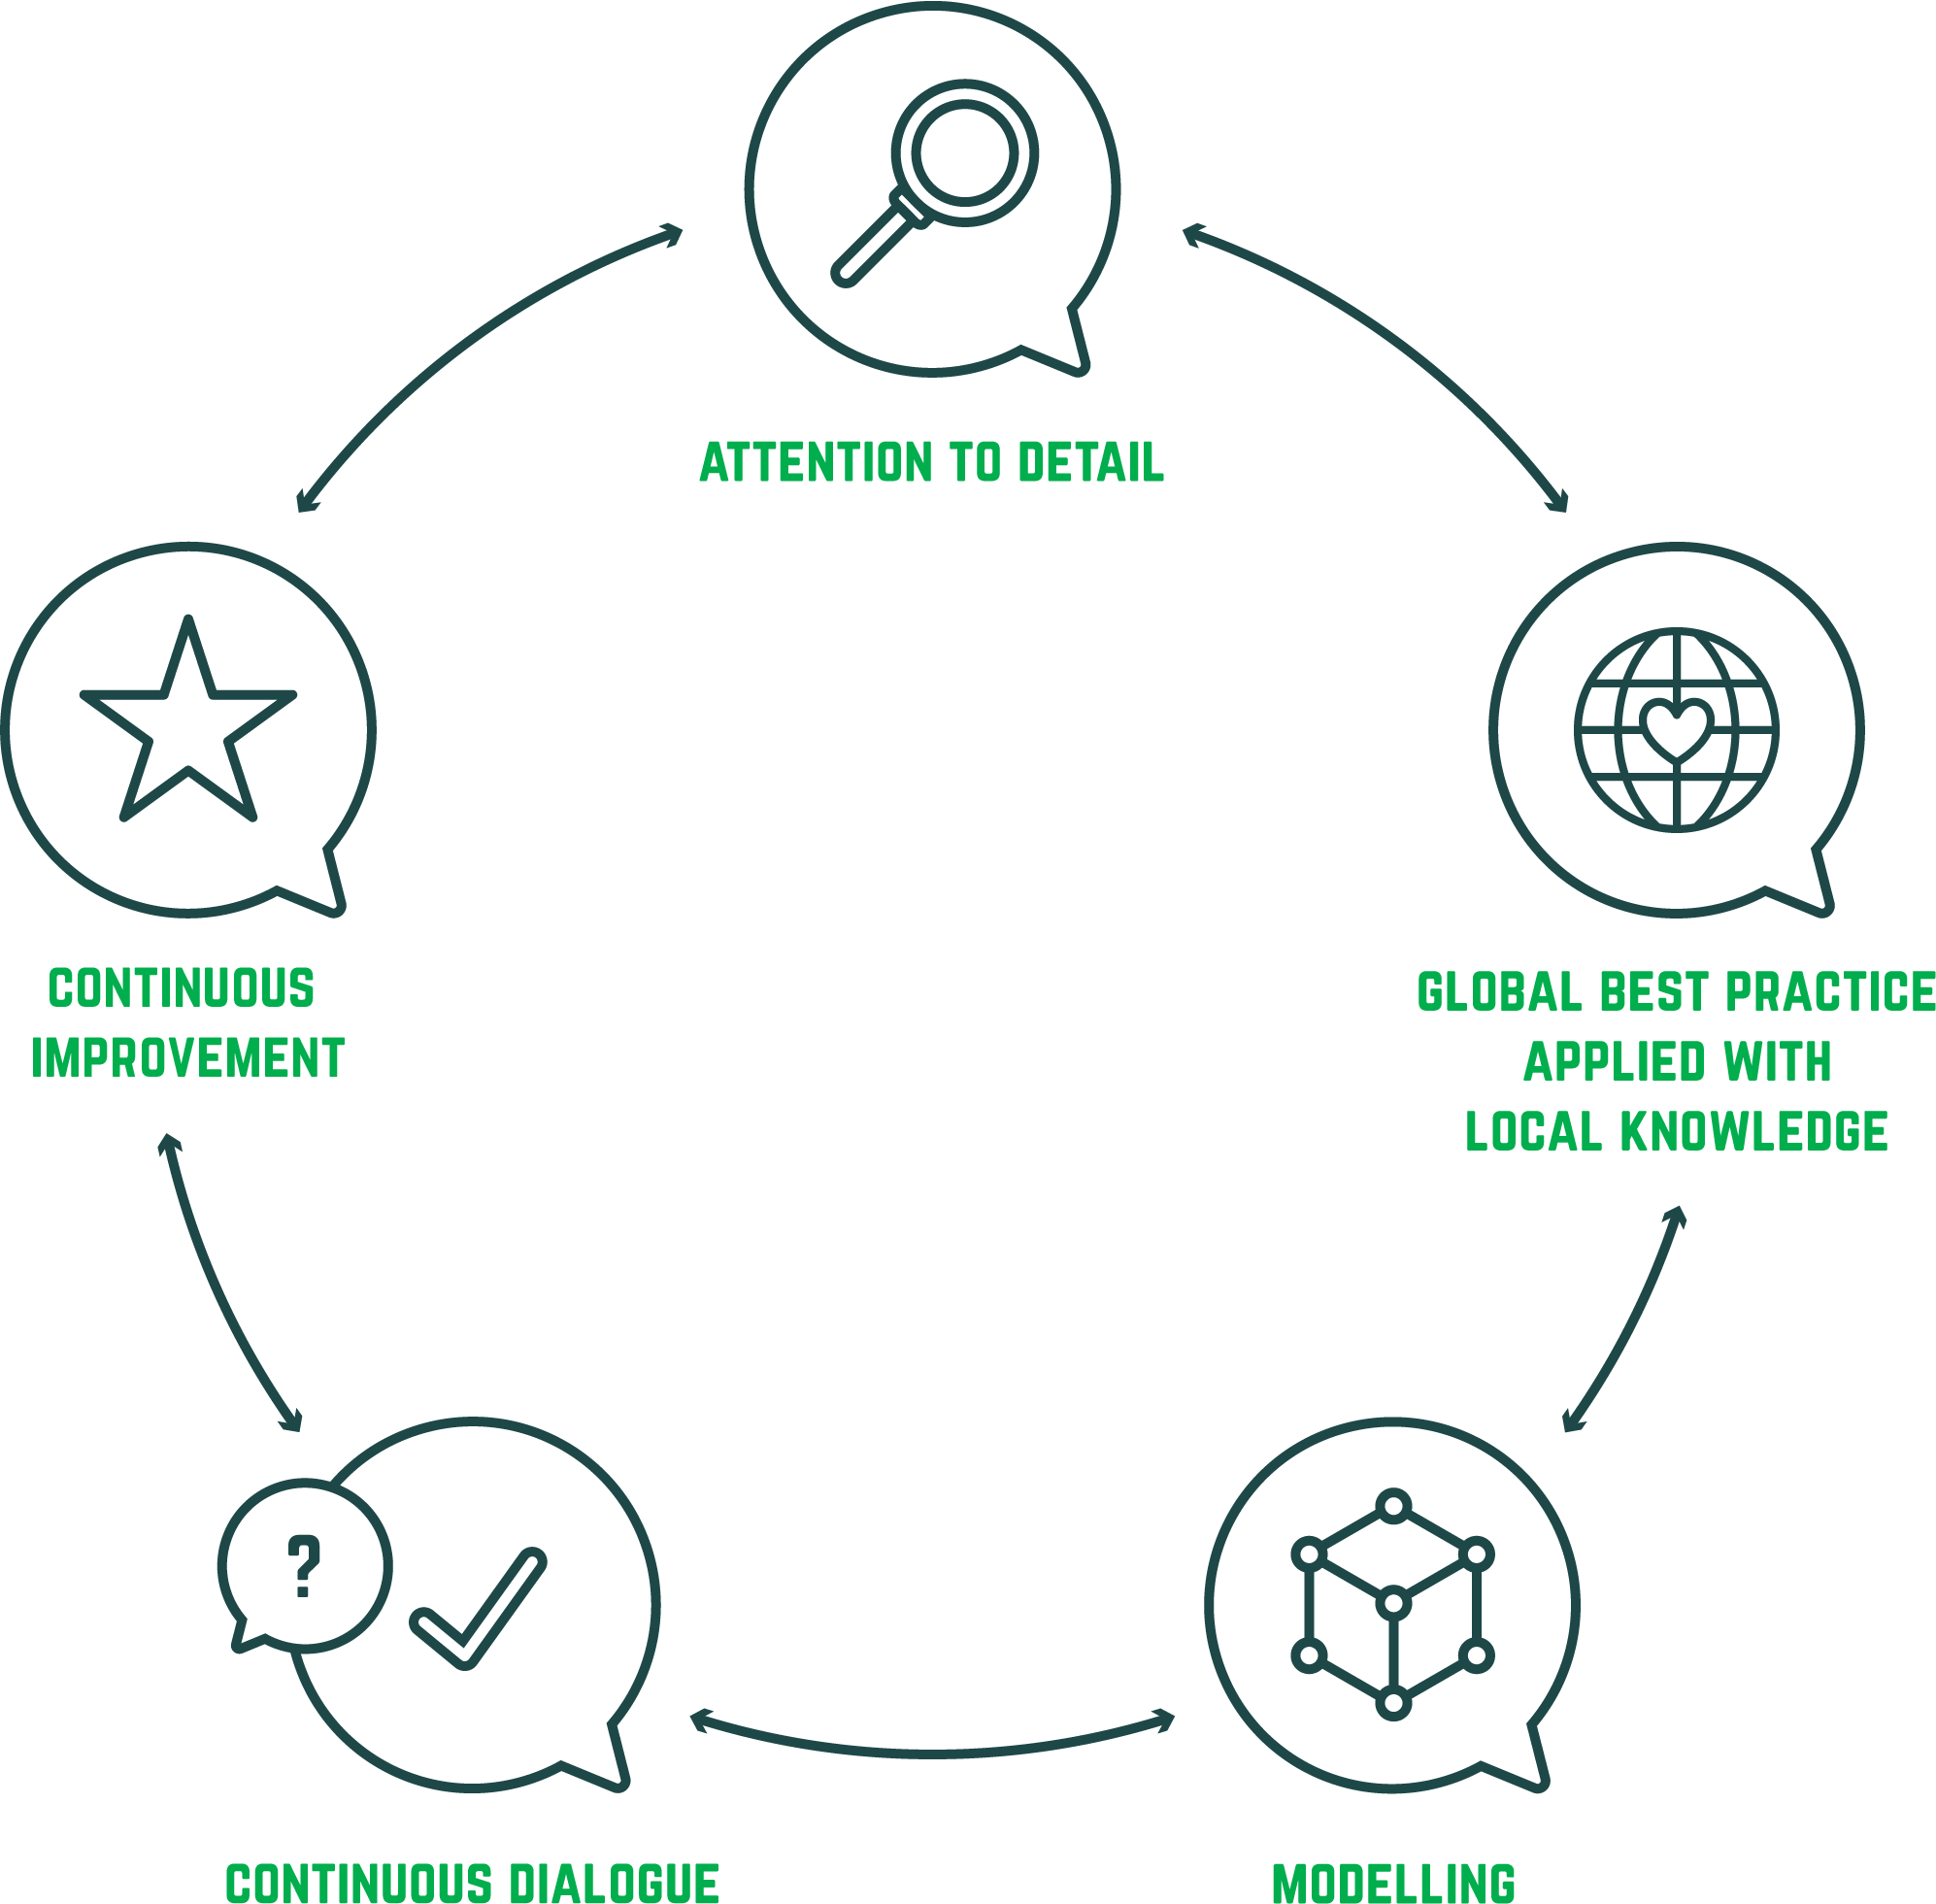 Network planning diagram depicting 5 principles – Attention to detail, global best practice applied with local knowledge, modelling, continuous dialogue and continuous improvement.